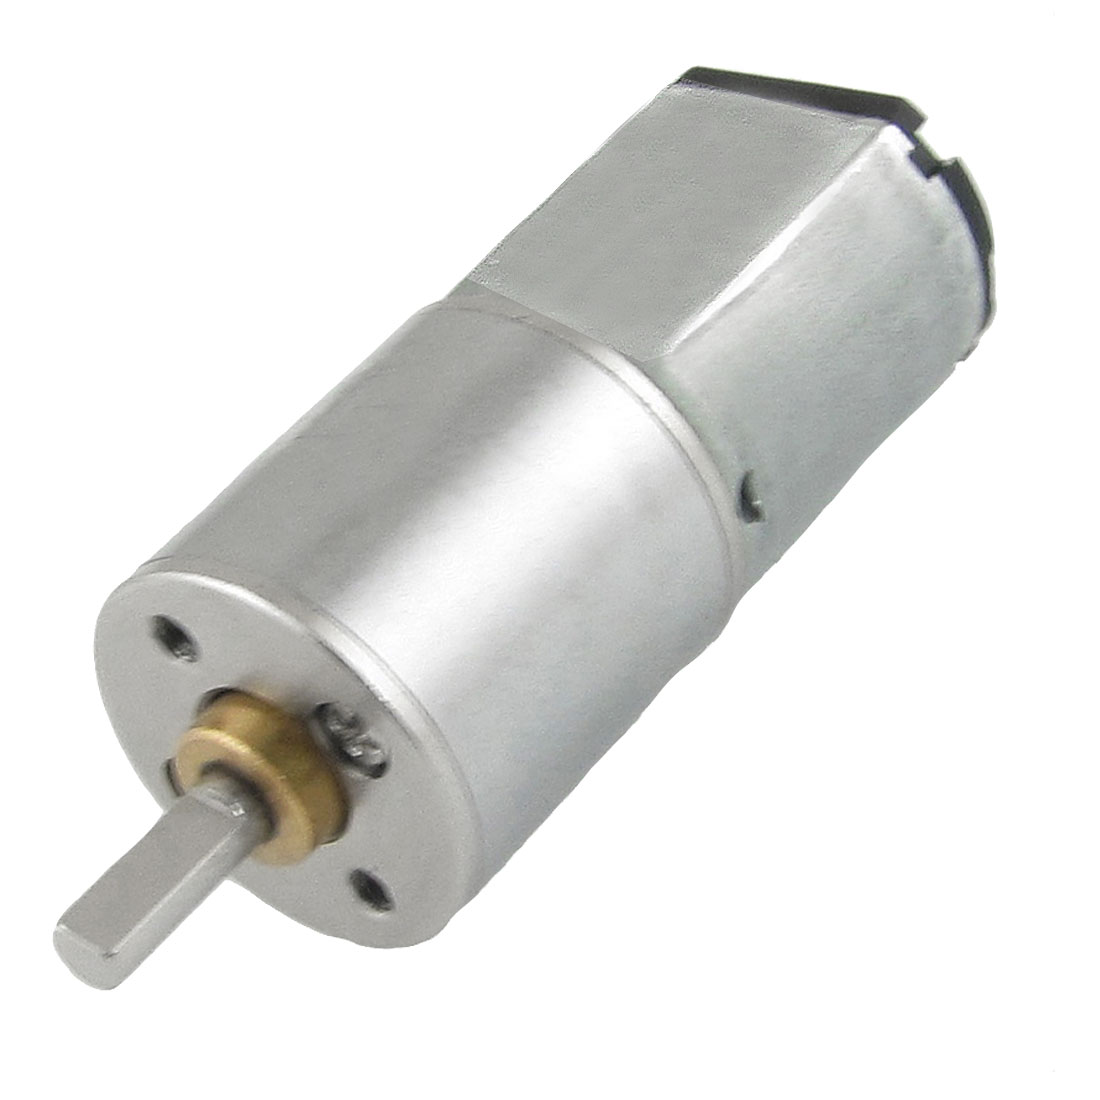 Electric-Speed-Reducing-Metal-DC-Geared-Motor-6V-30RPM-0-3A